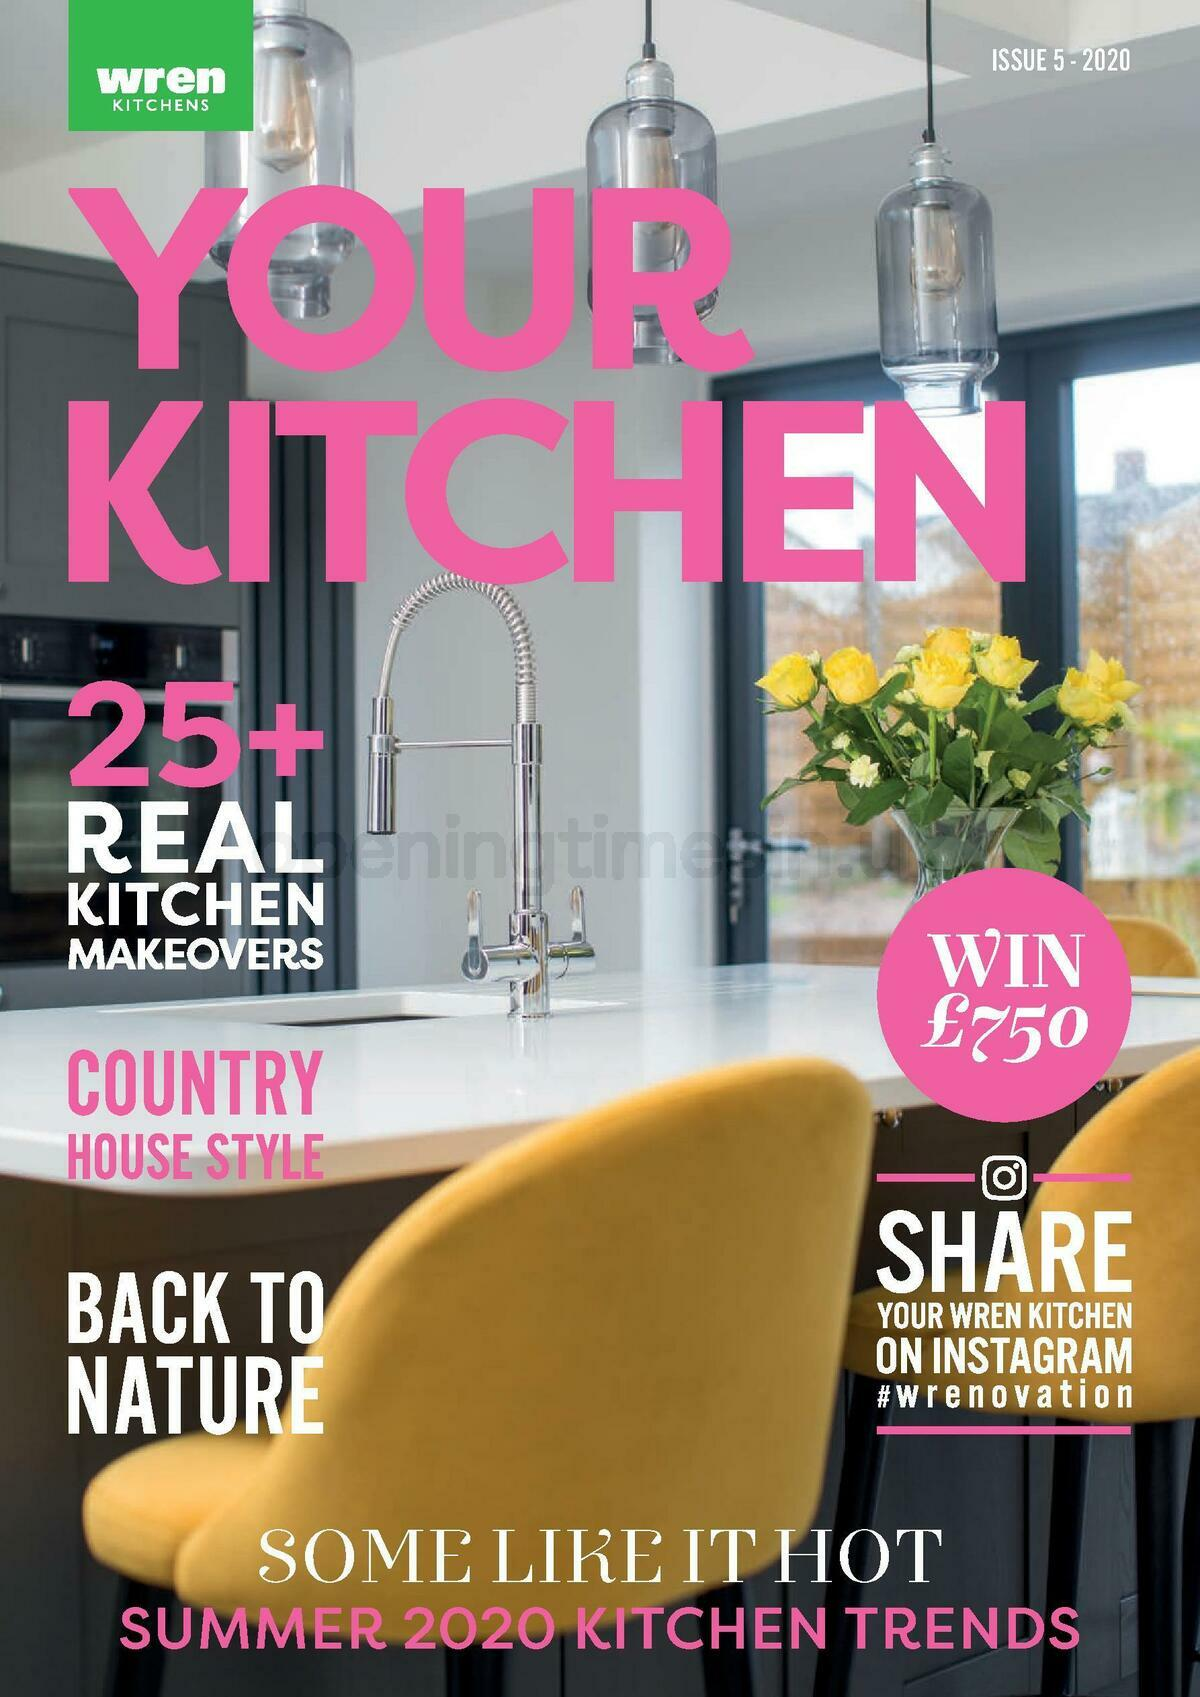 Wren Kitchens Offers from June 1